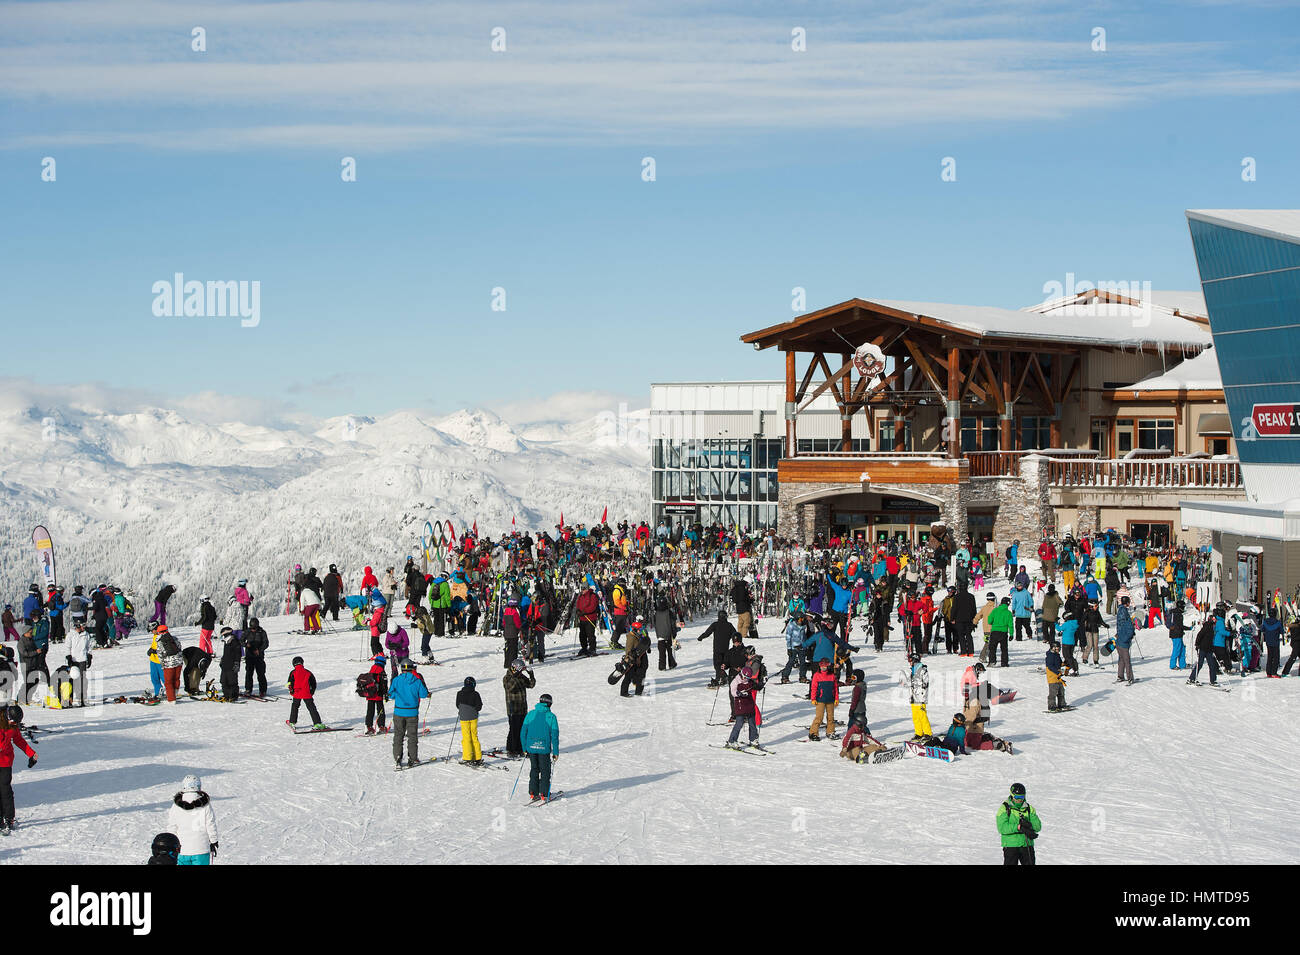 The Roundhouse Lodge at the top of Whistler Mountain on a sunny day in the winter.  Whistler BC, Canada. - Stock Image